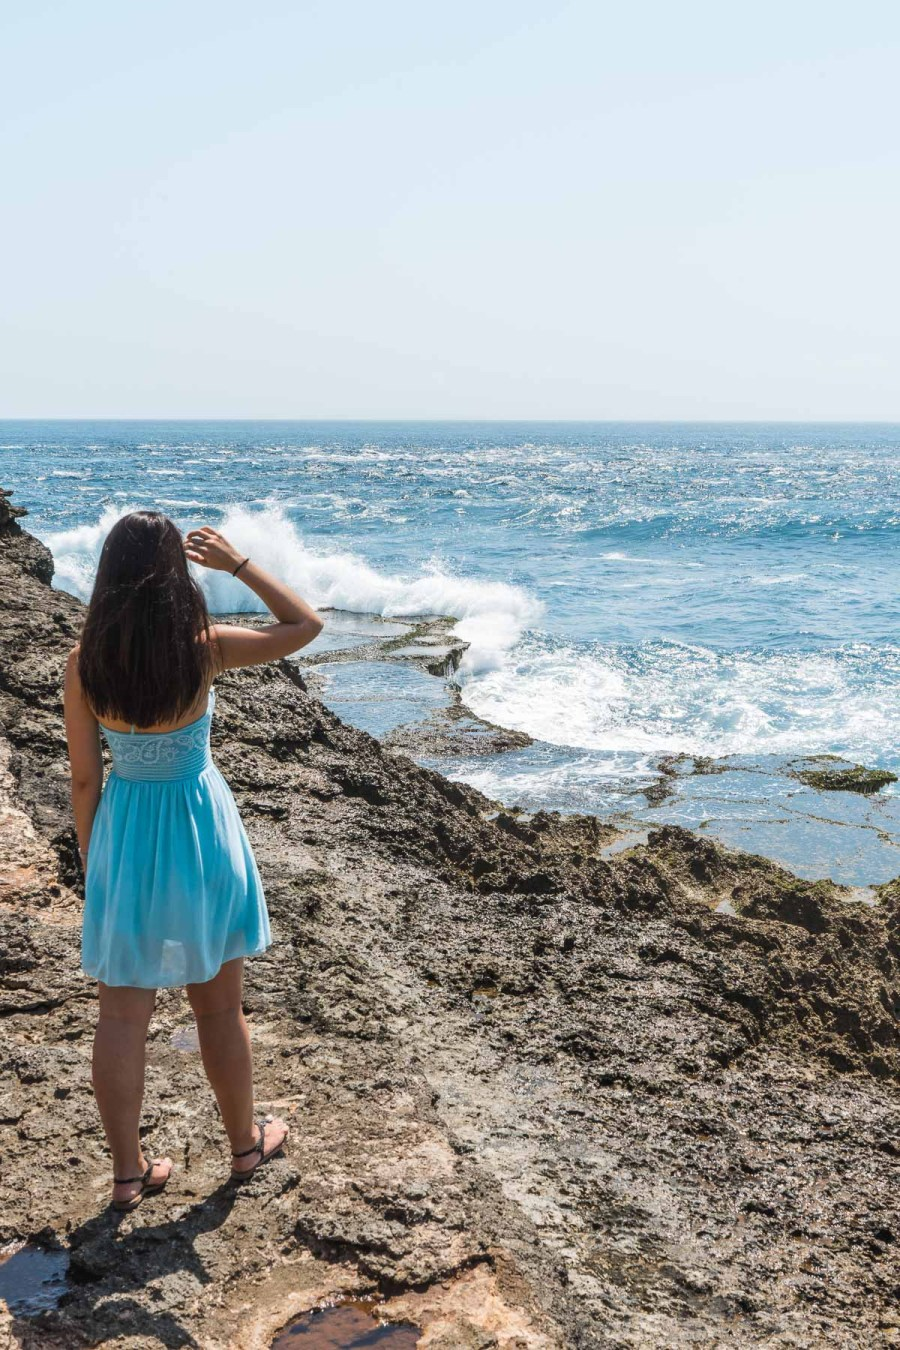 Girl in a blue dress standing at Devils Tear on Nusa Lembongan